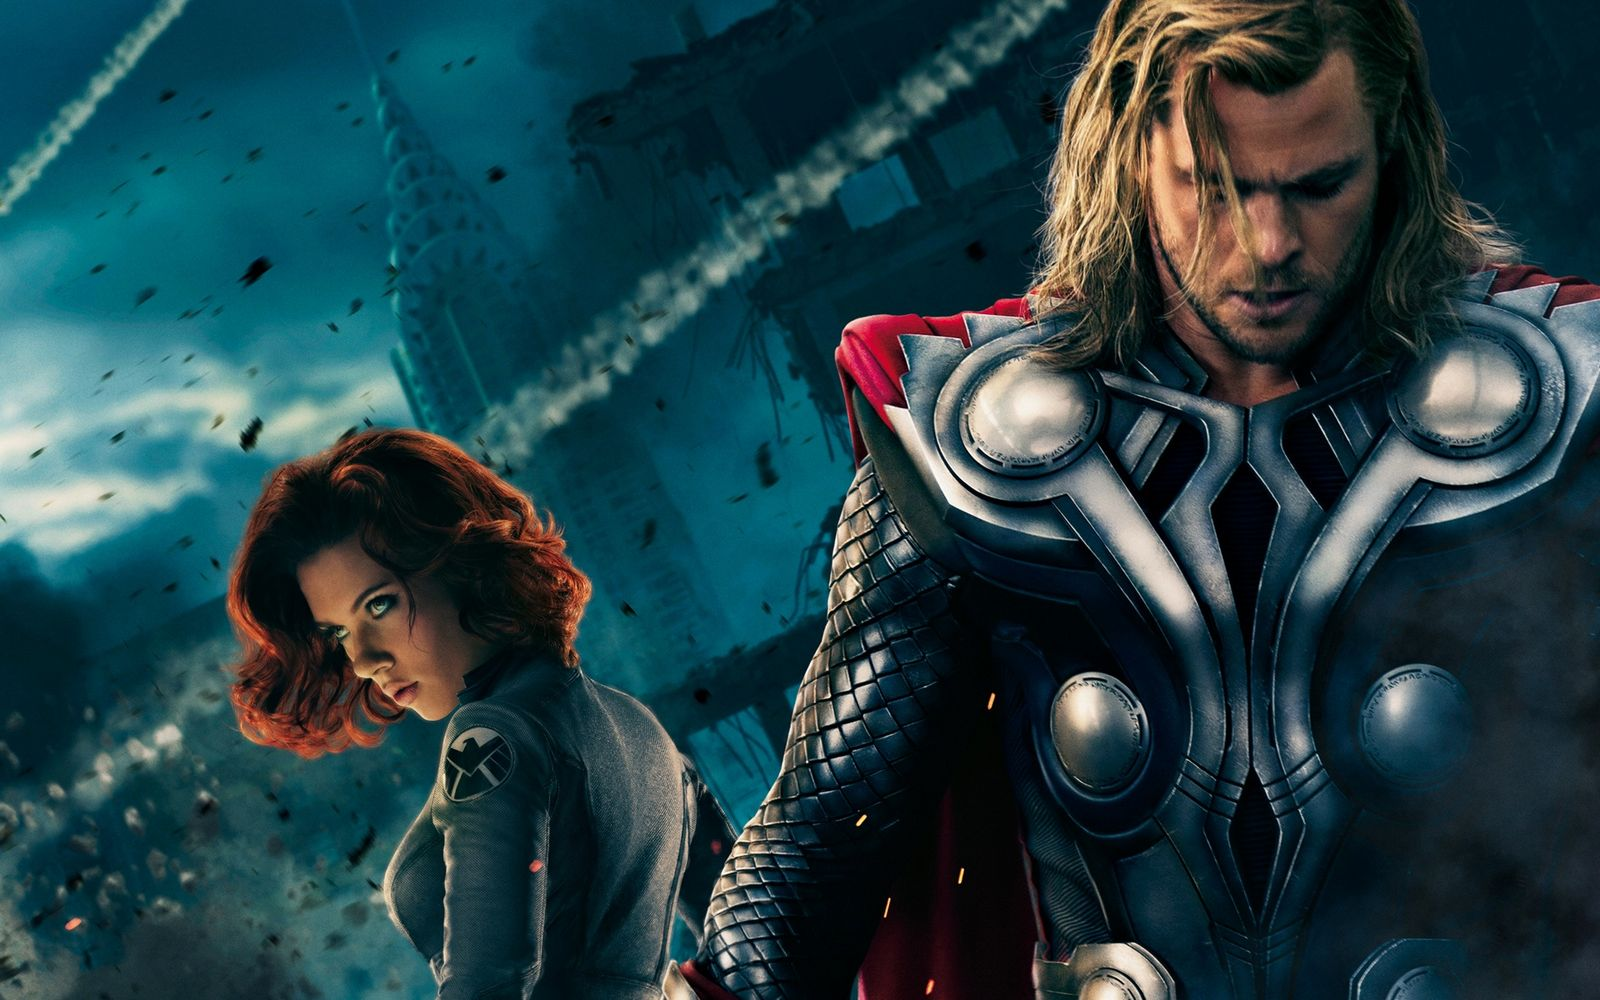 Wallpaper HD Thor in The Avengers